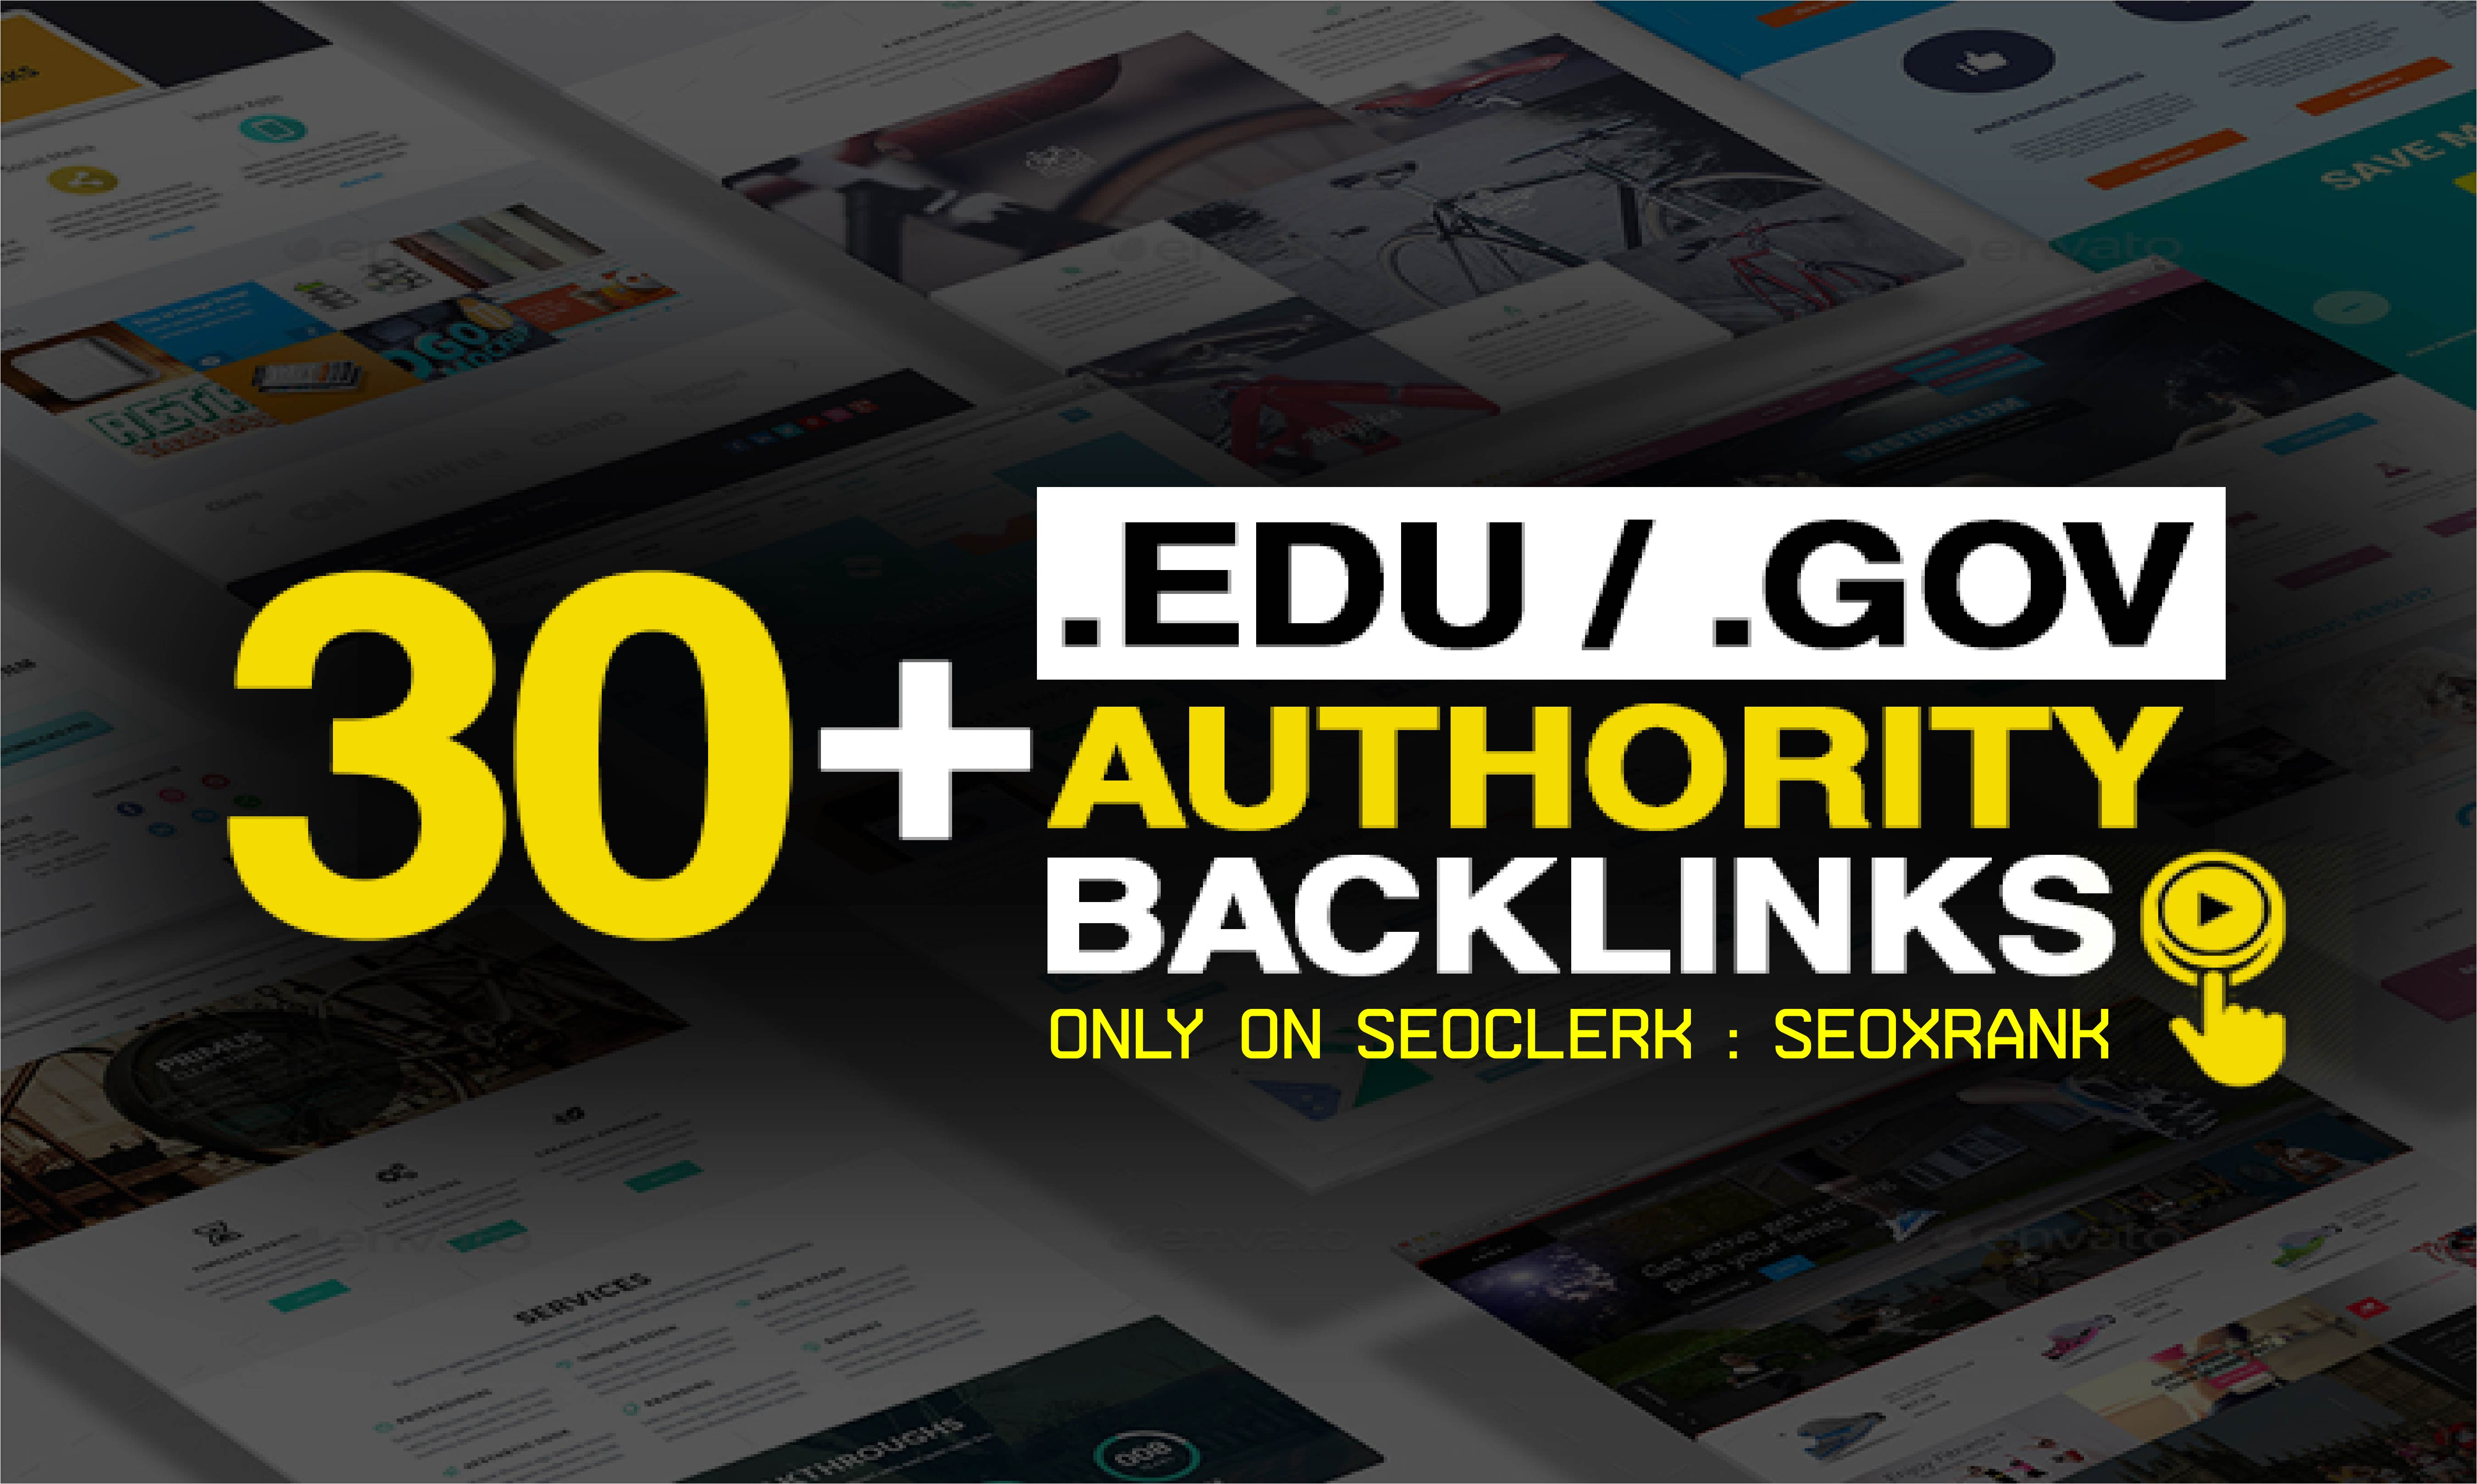 Creat 30+ EDU-GOV Safe SEO Backlinks Authority Site to Boost Your Google Ranking